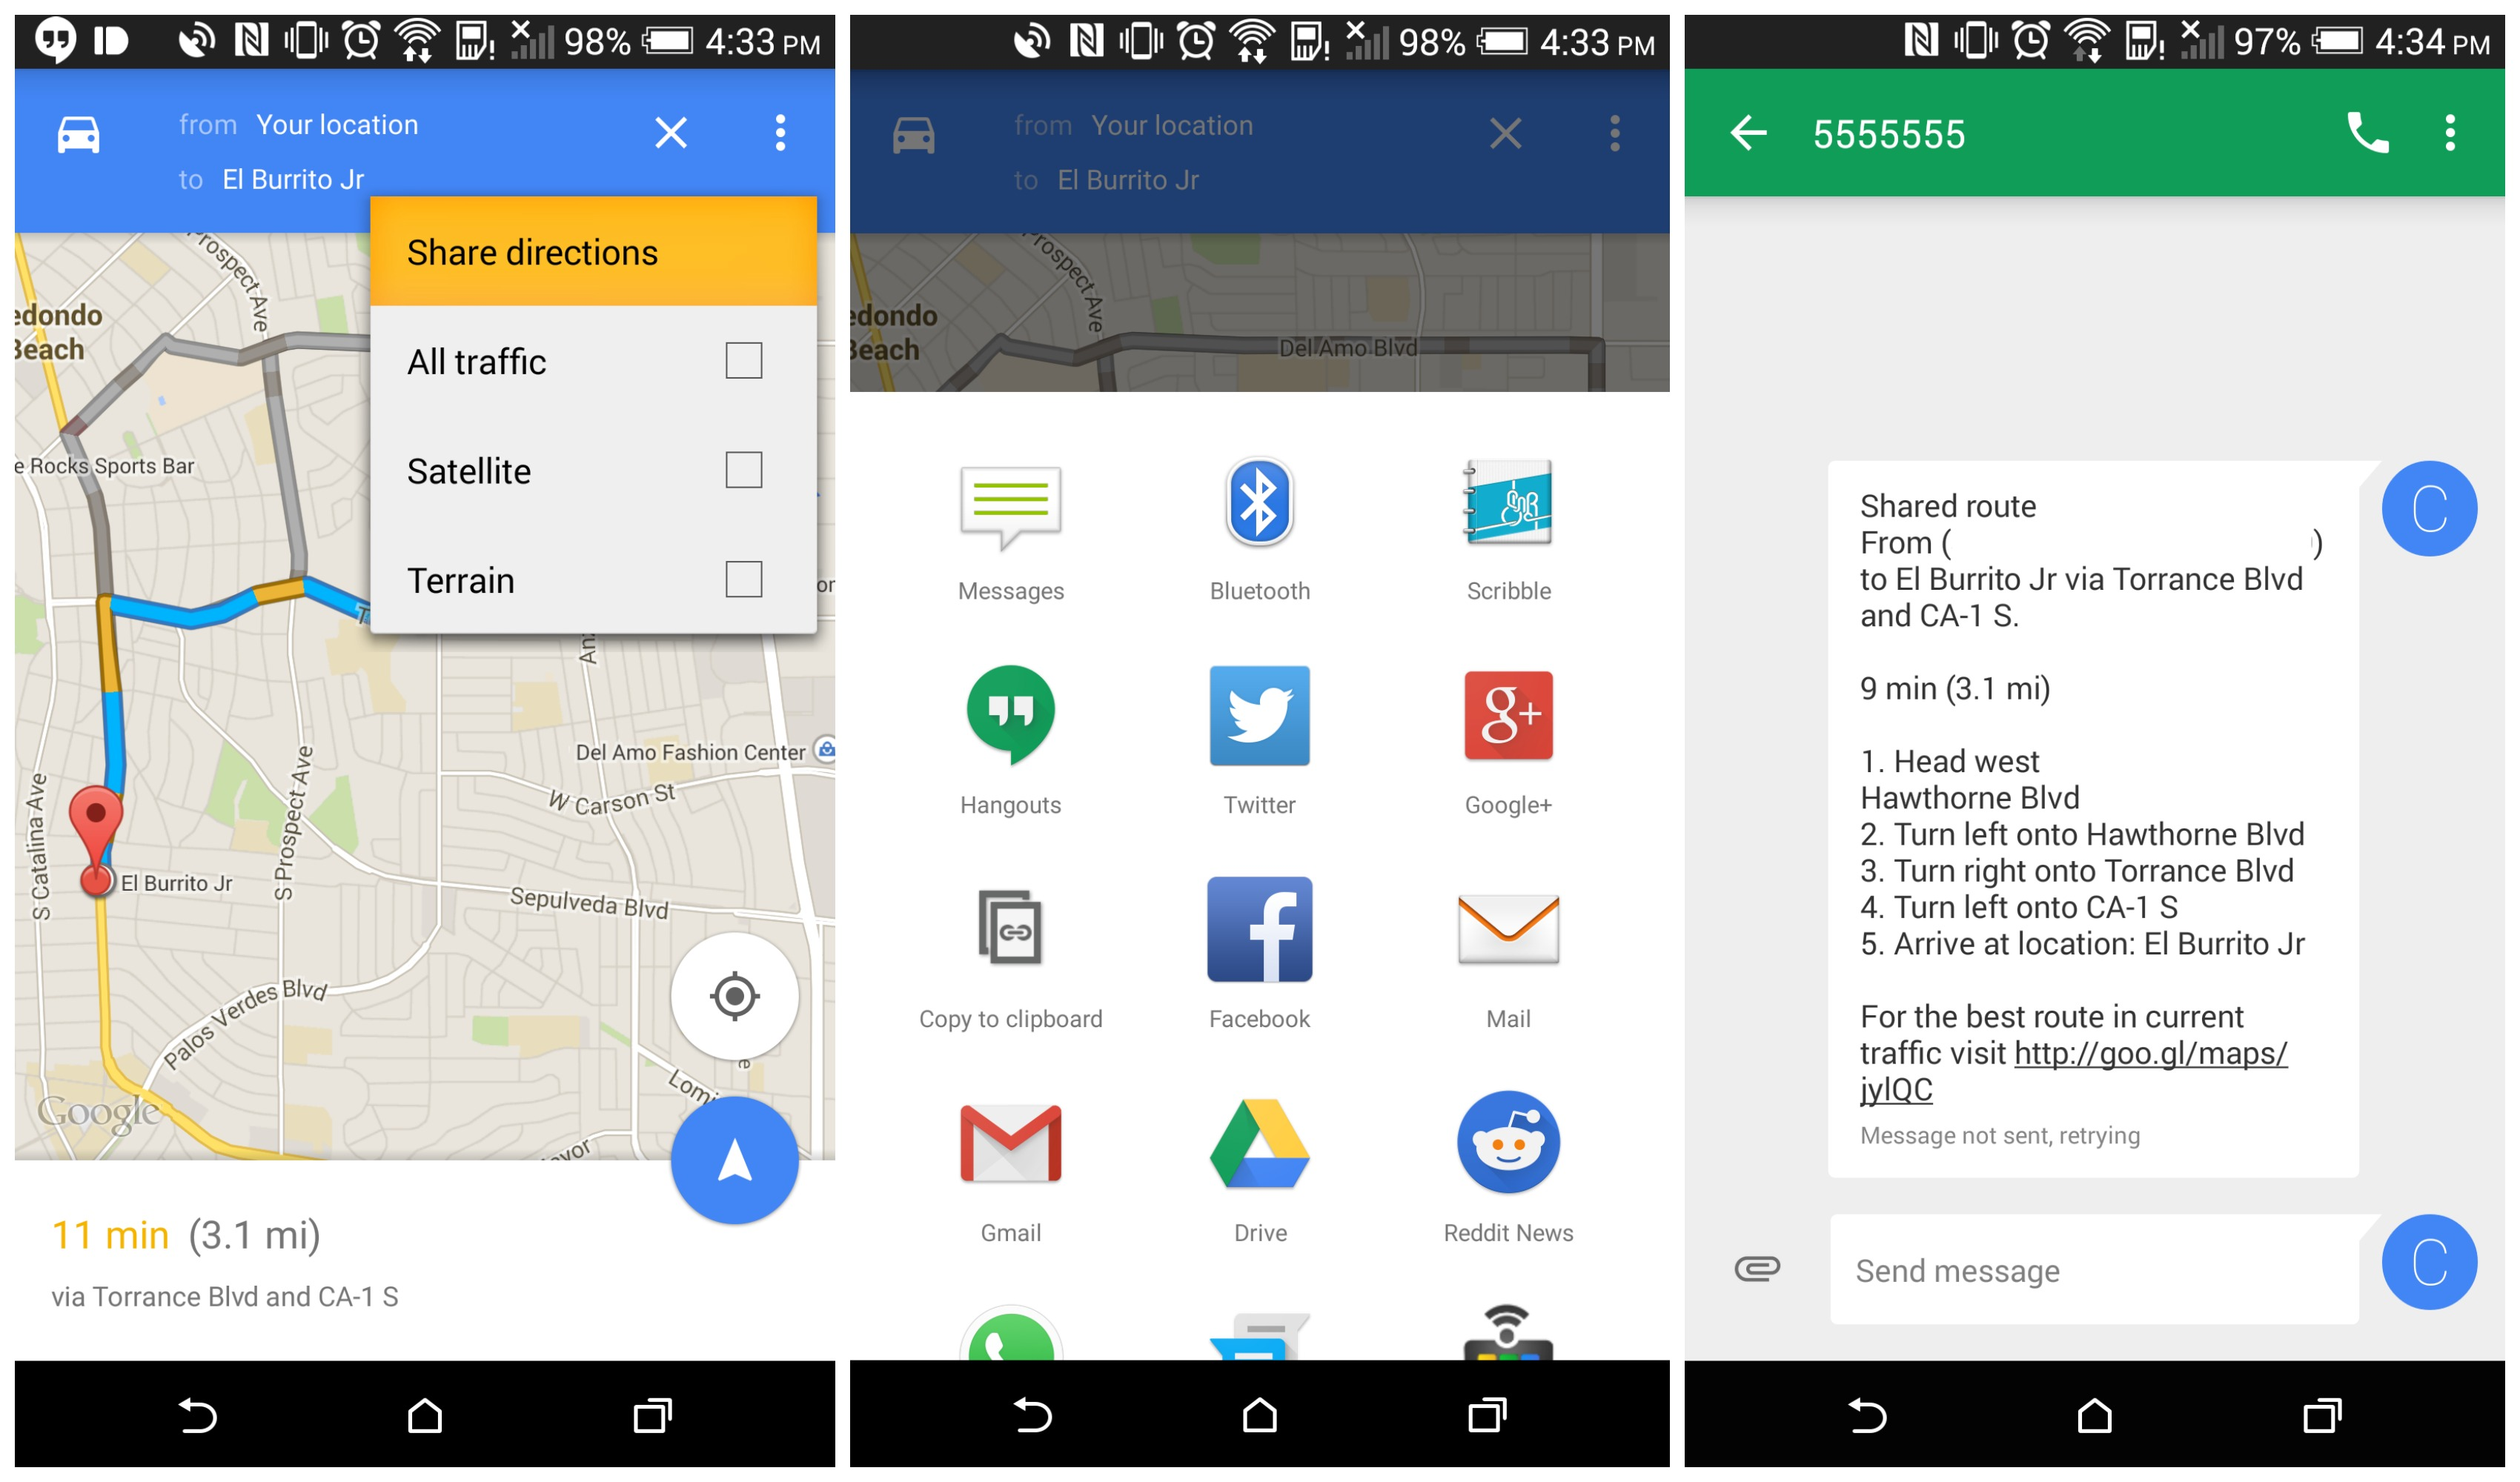 download google maps  with sharable directions - google maps  download